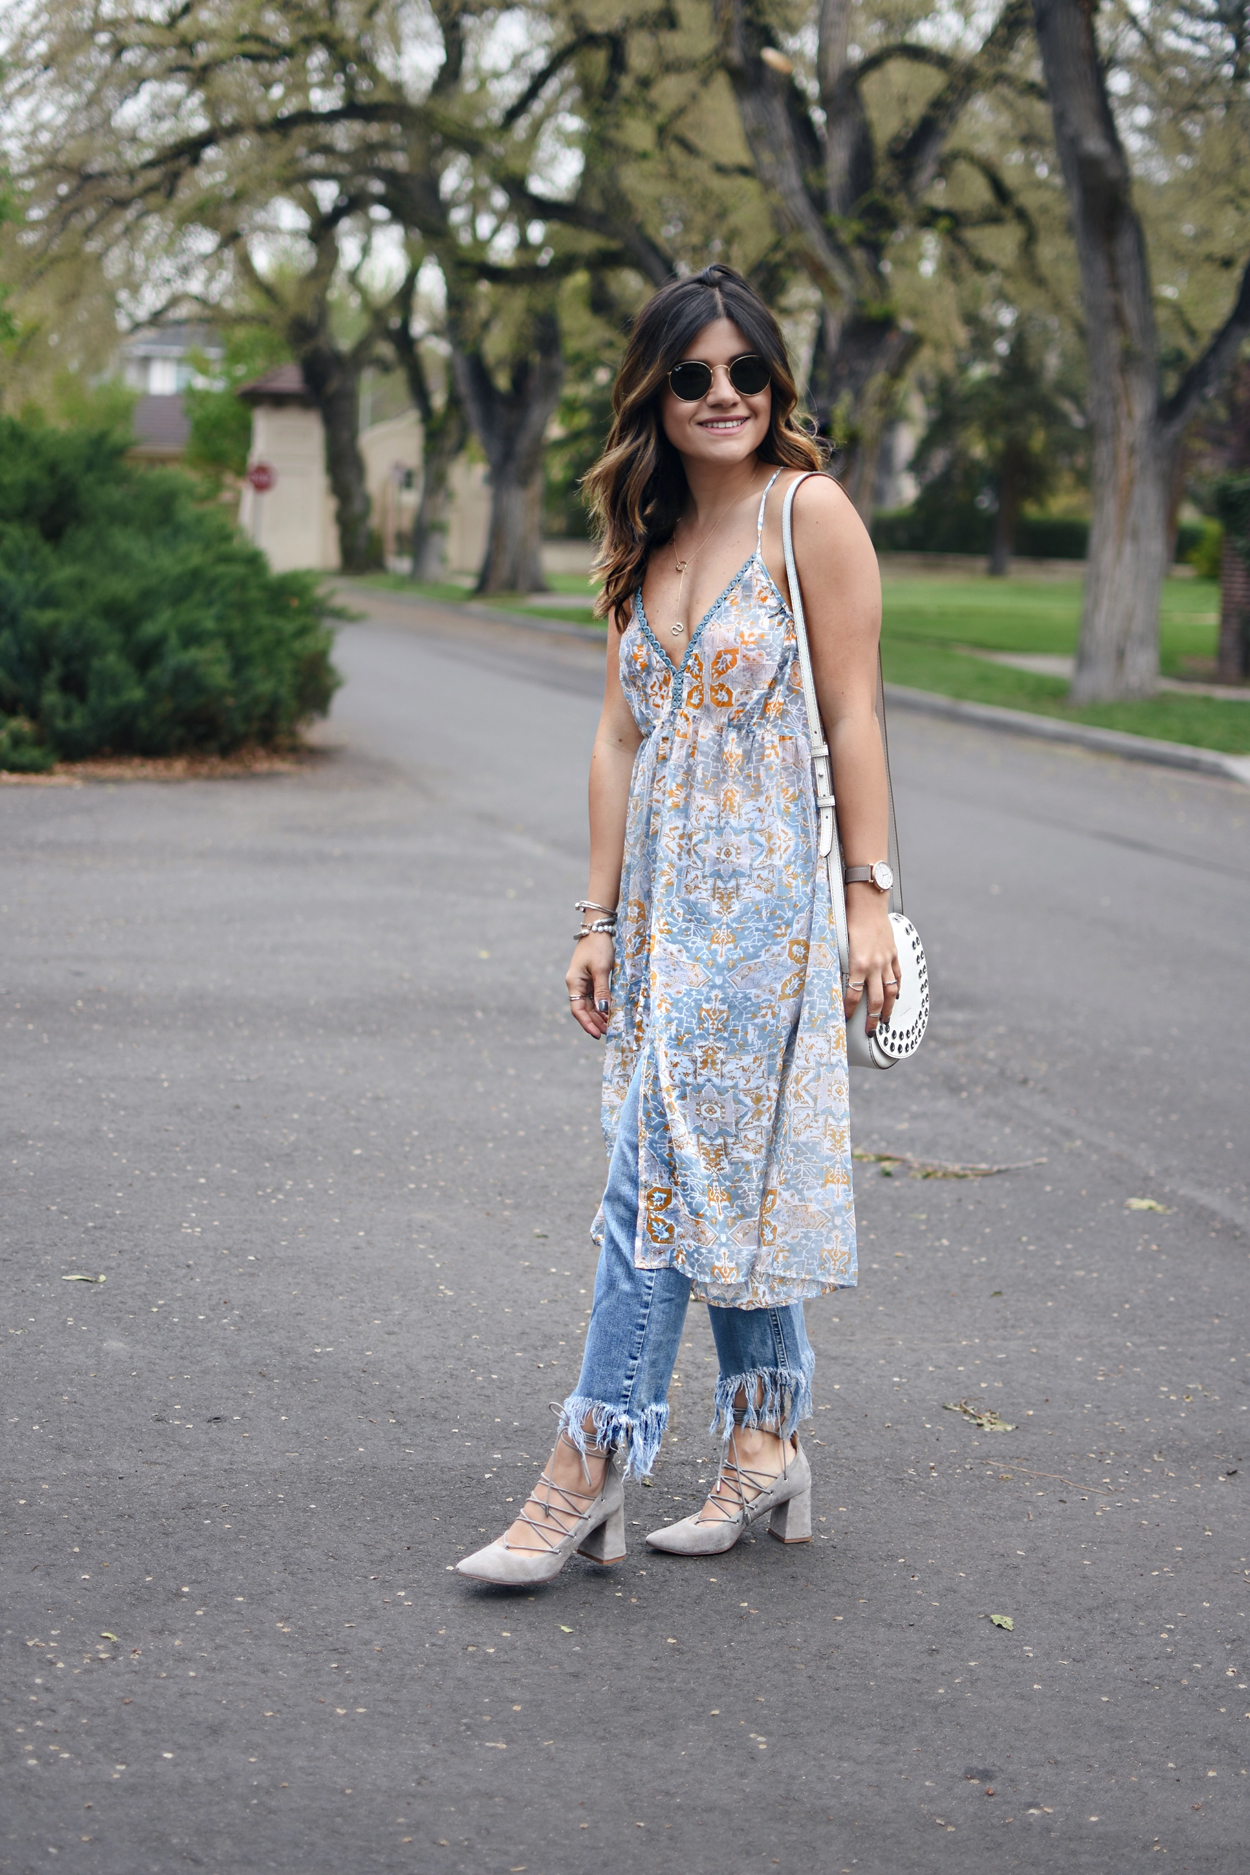 Carolina Hellal of Chic Talk wearing a floral tunic, fringed jeans, lace up heels, Rounded Rayban sunglasses and a white crossbody bag